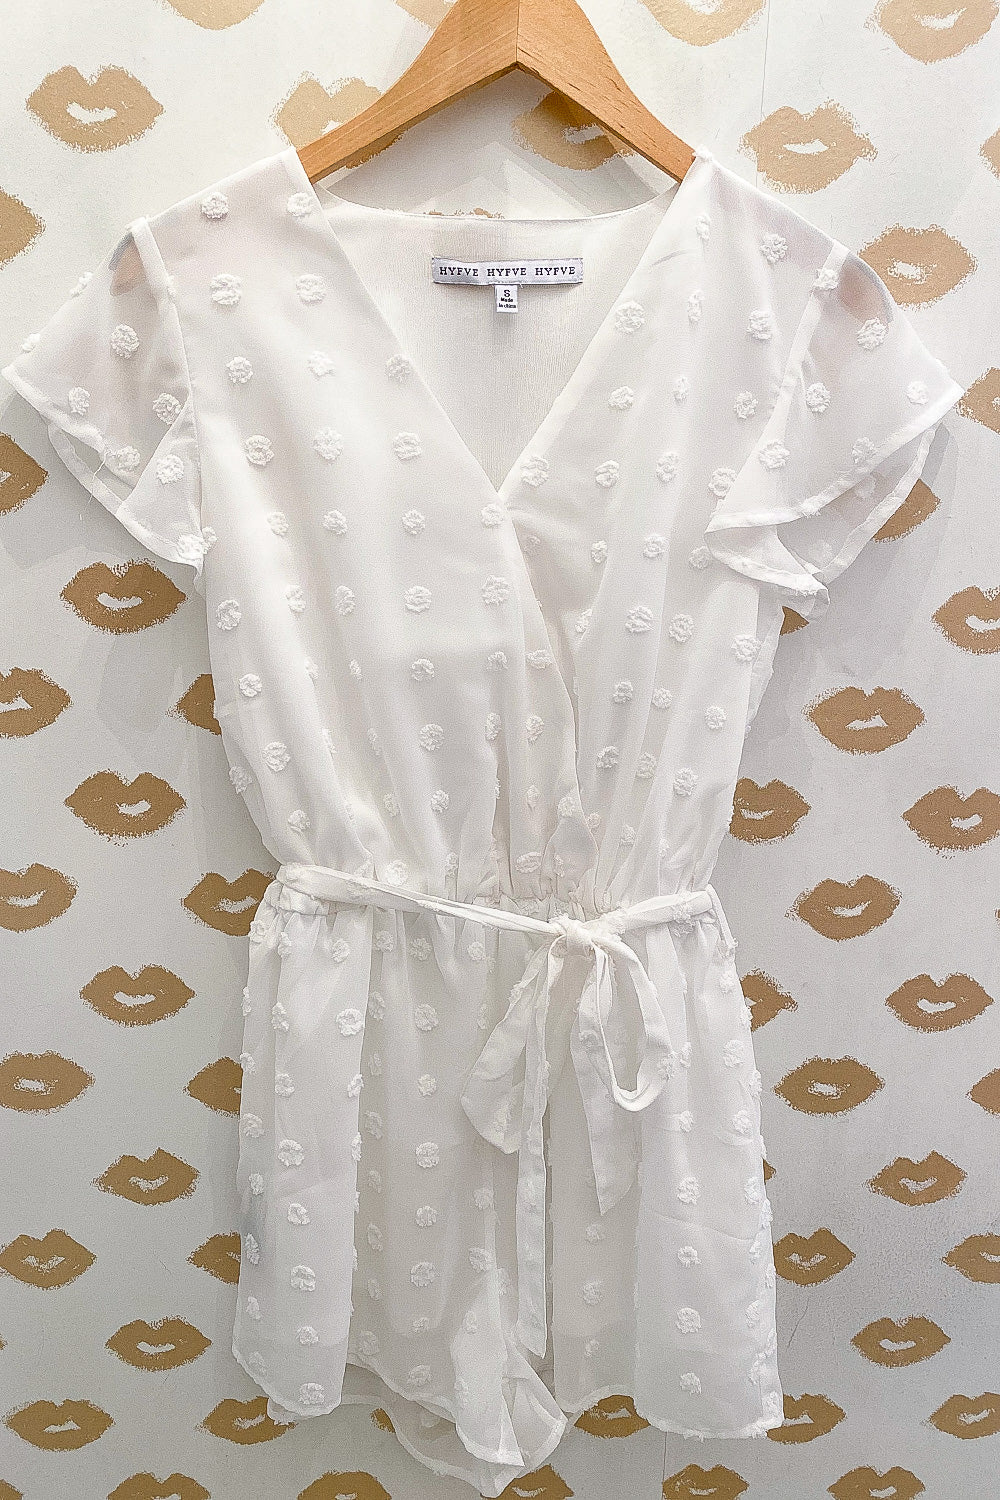 White Textured Flutter Sleeve Romper with Tie Waist